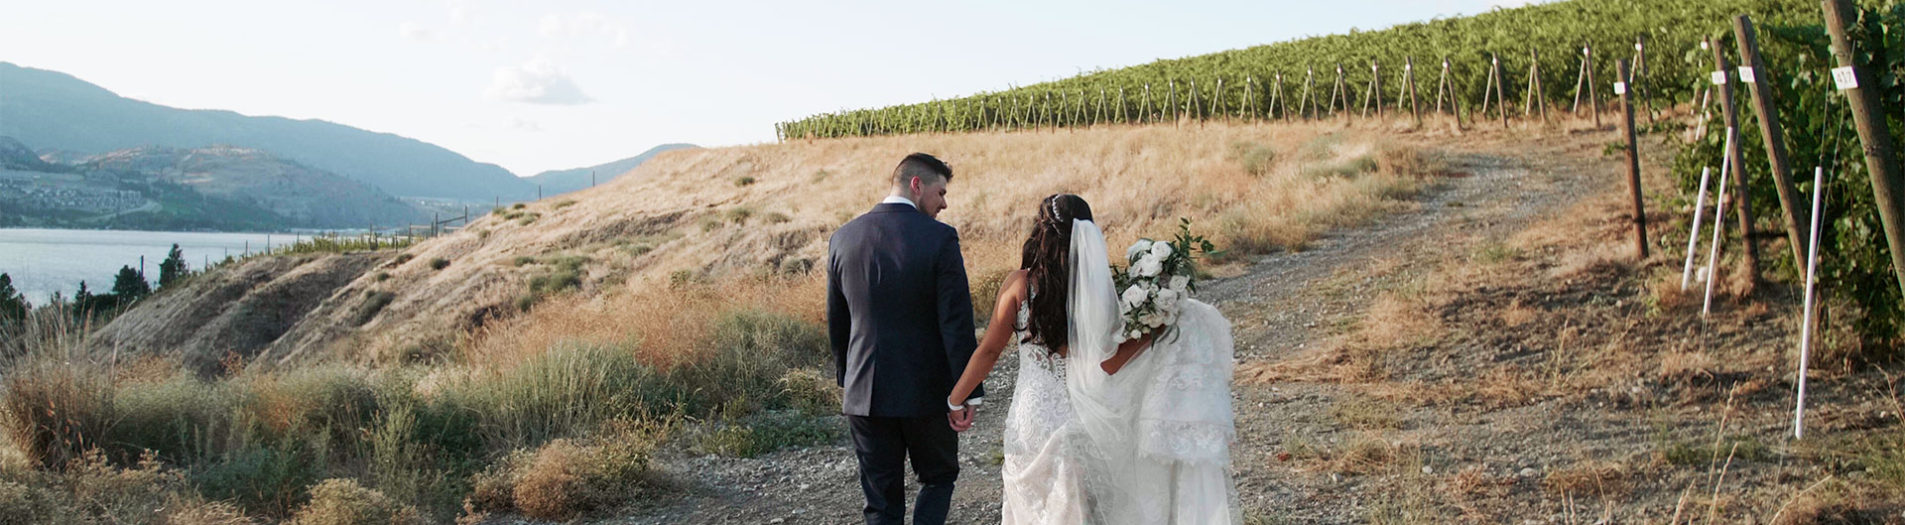 Painted Rock Winery Wedding | Okanagan Wedding Video | Chloe + Scott